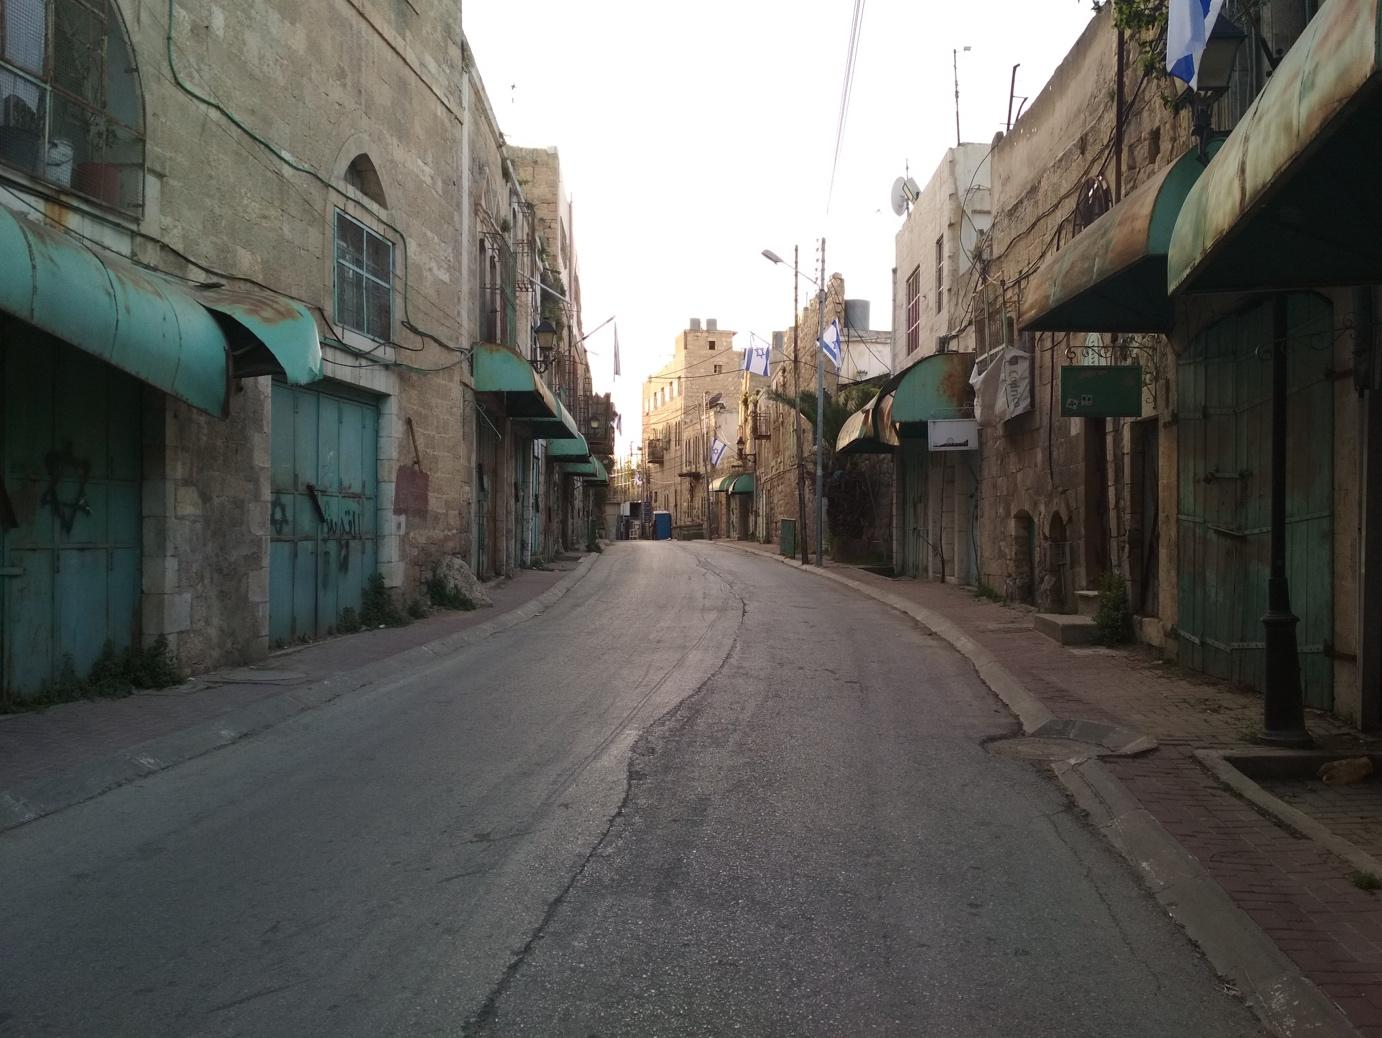 A part of Shuhada street in Hebron's Old City wears a ghost-town look since it is now forbidden for Palestinians to go there. It is open to Israeli Jews and foreigners.